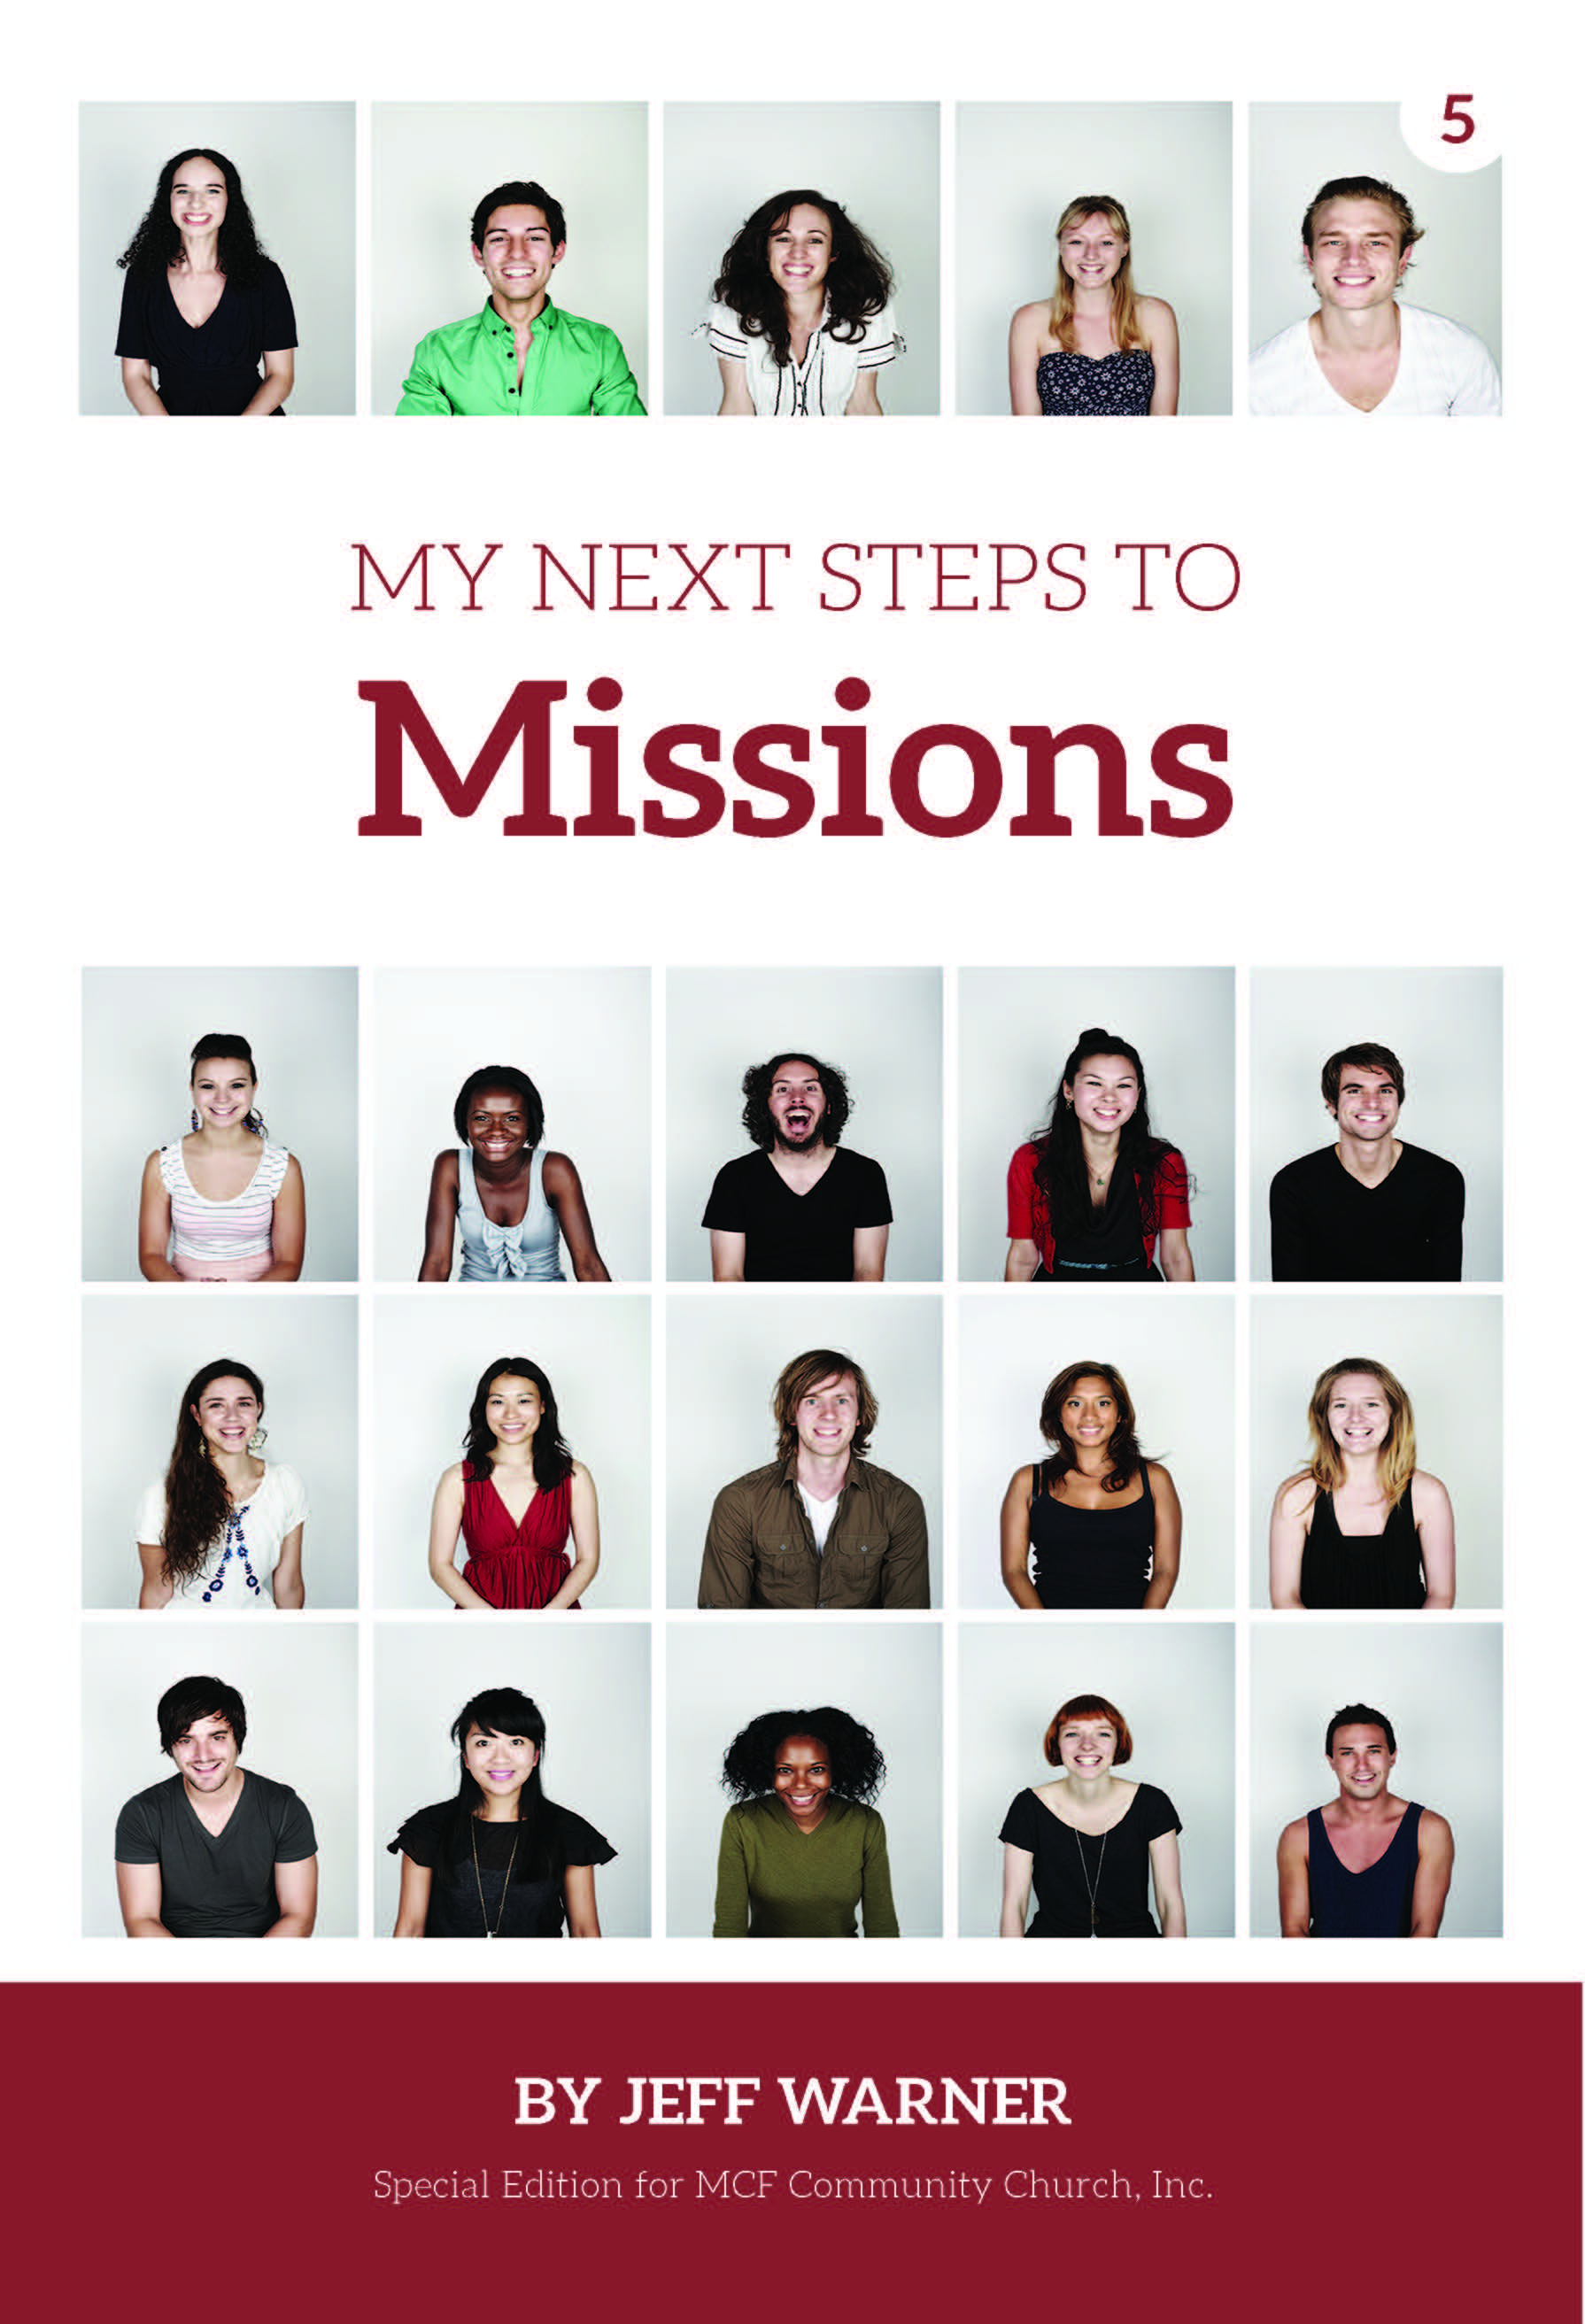 5-Missions Cover-6Aug14.jpg